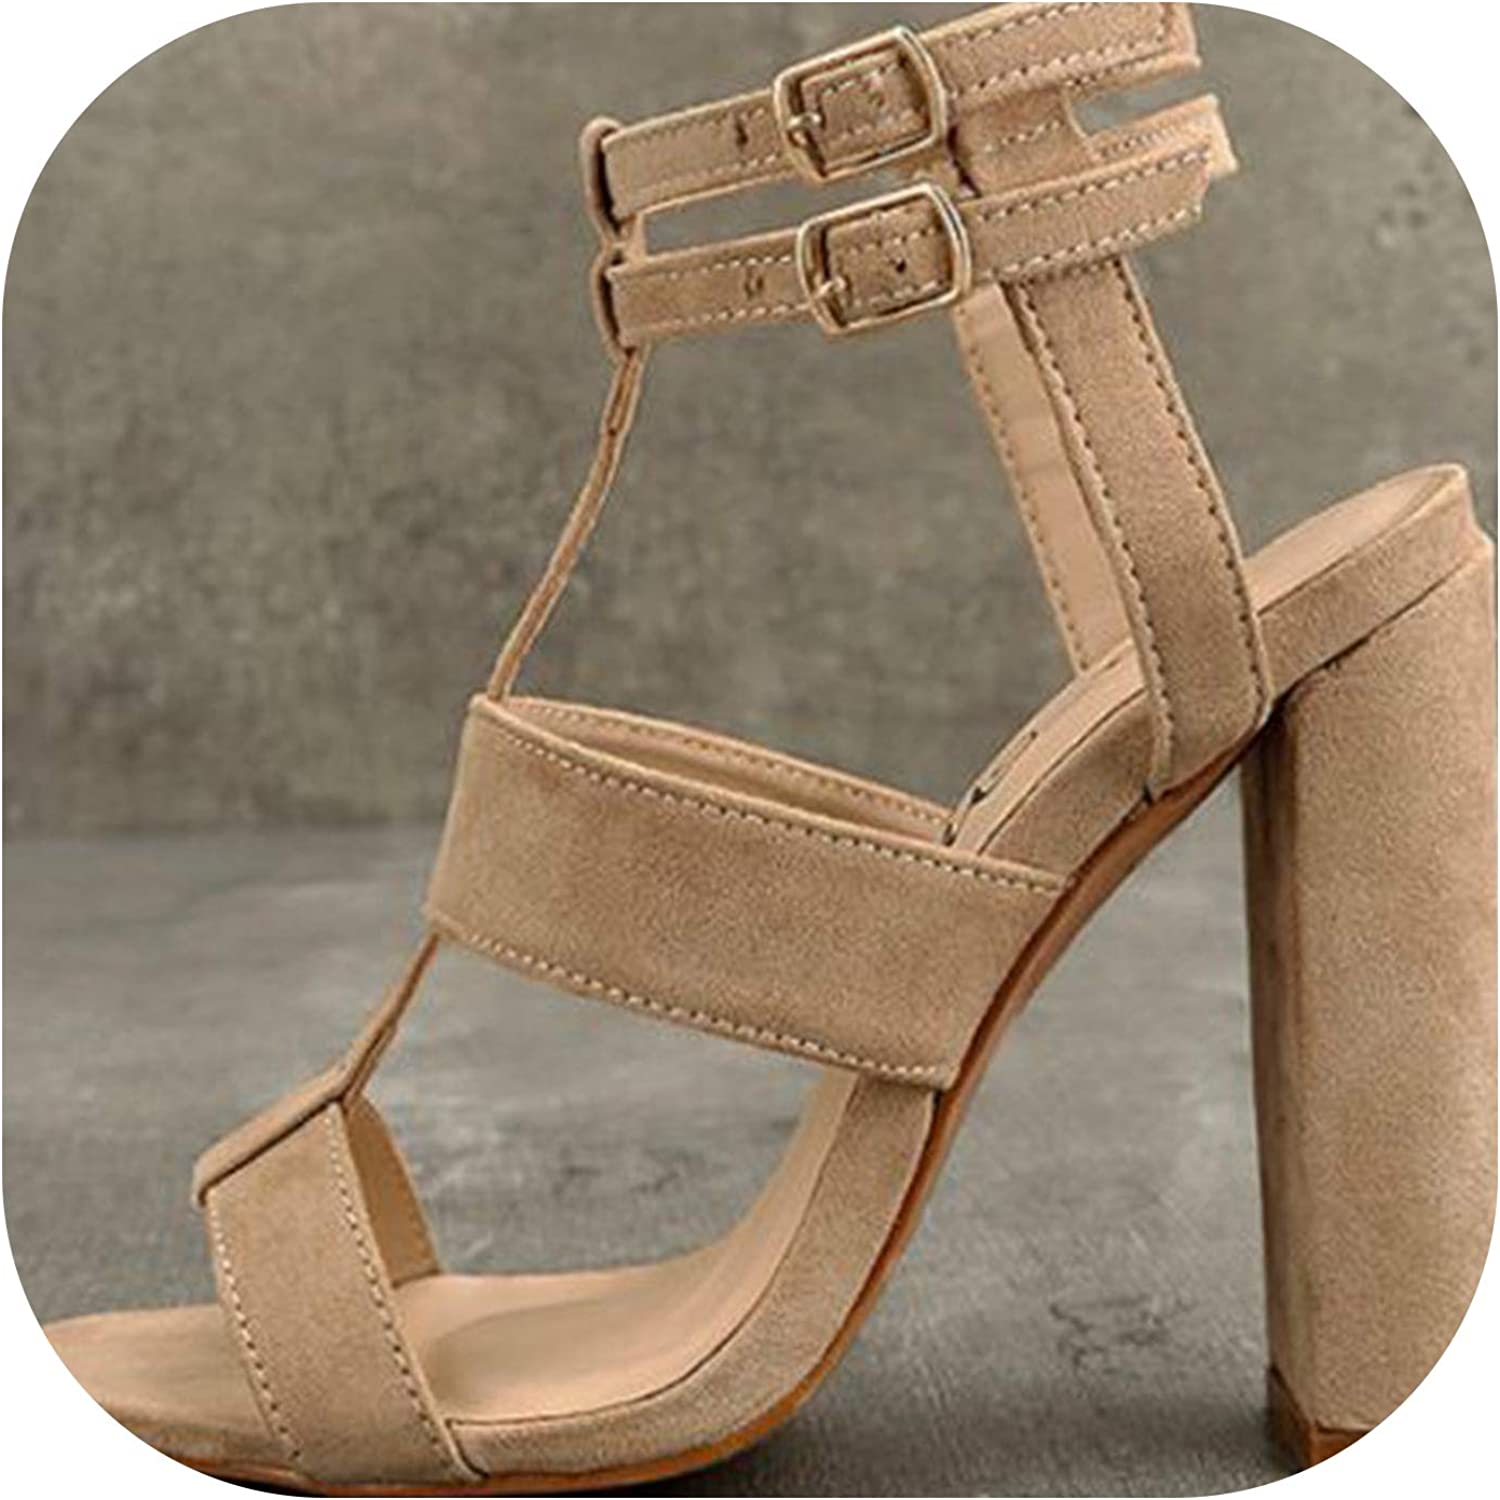 Women's High Heel Sandals Women Summer shoes Buckle with Fashion Sandalias Party shoes